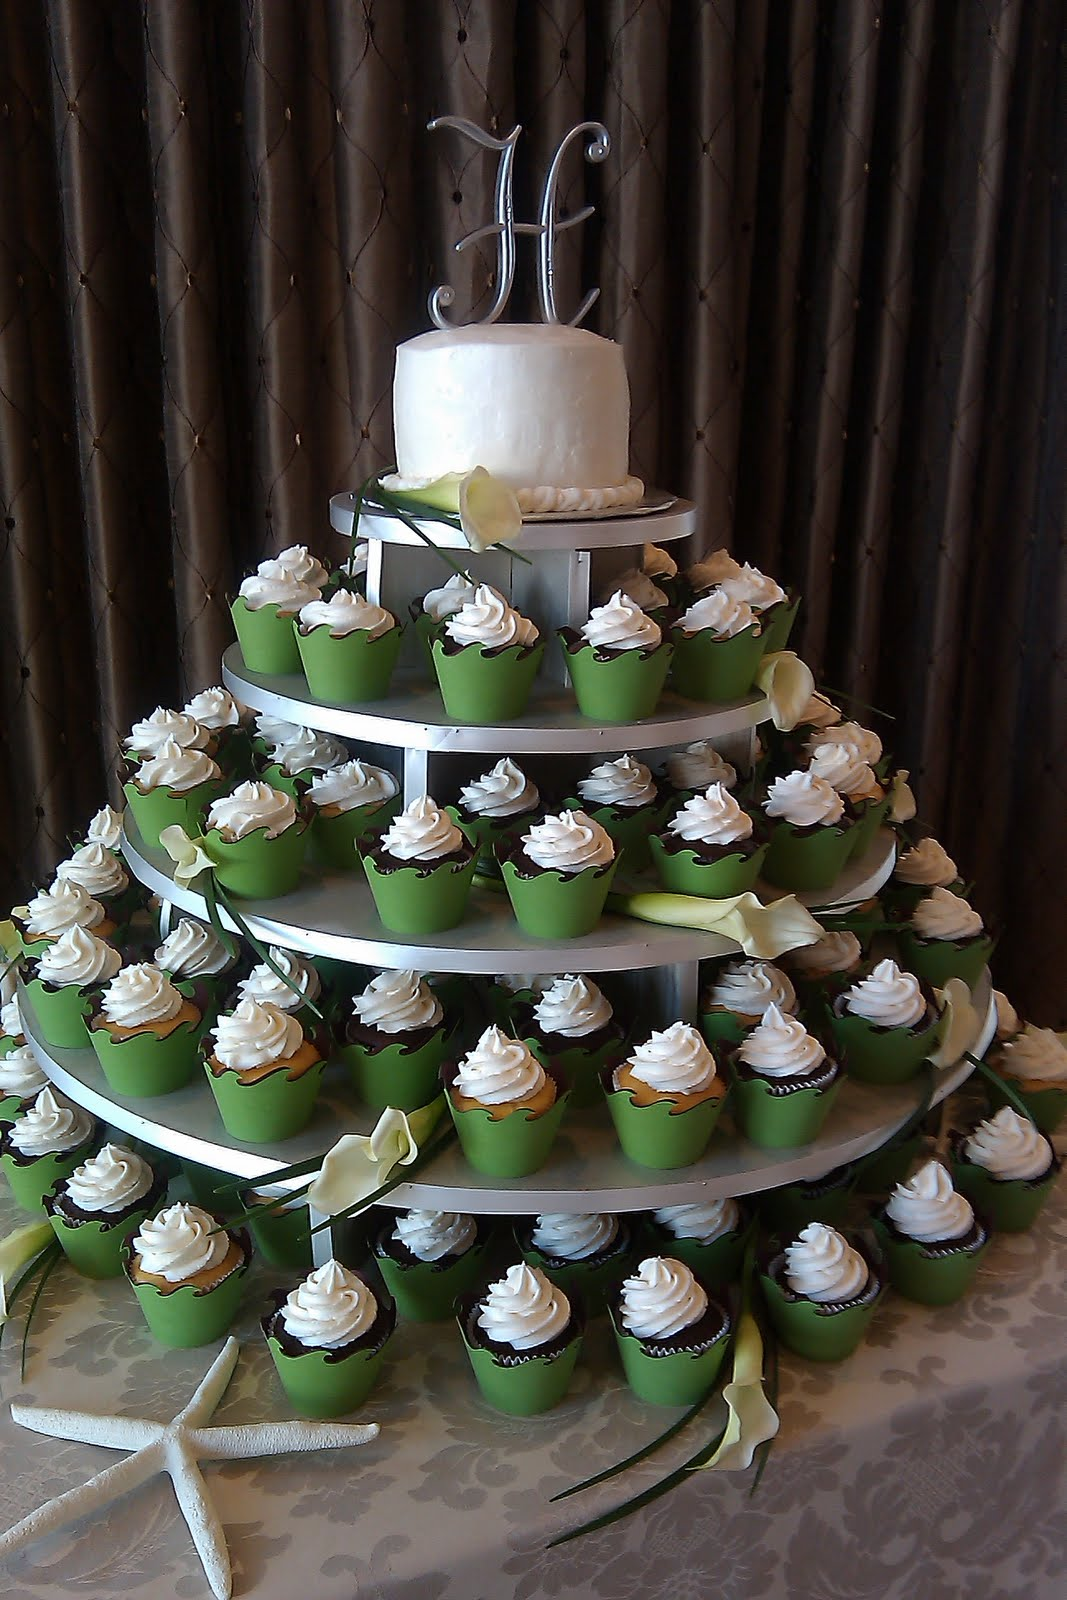 Cupcake Decorating Ideas For Church : Cupcake Cakes by Linda Stacy: Wedding Cupcake Tree!